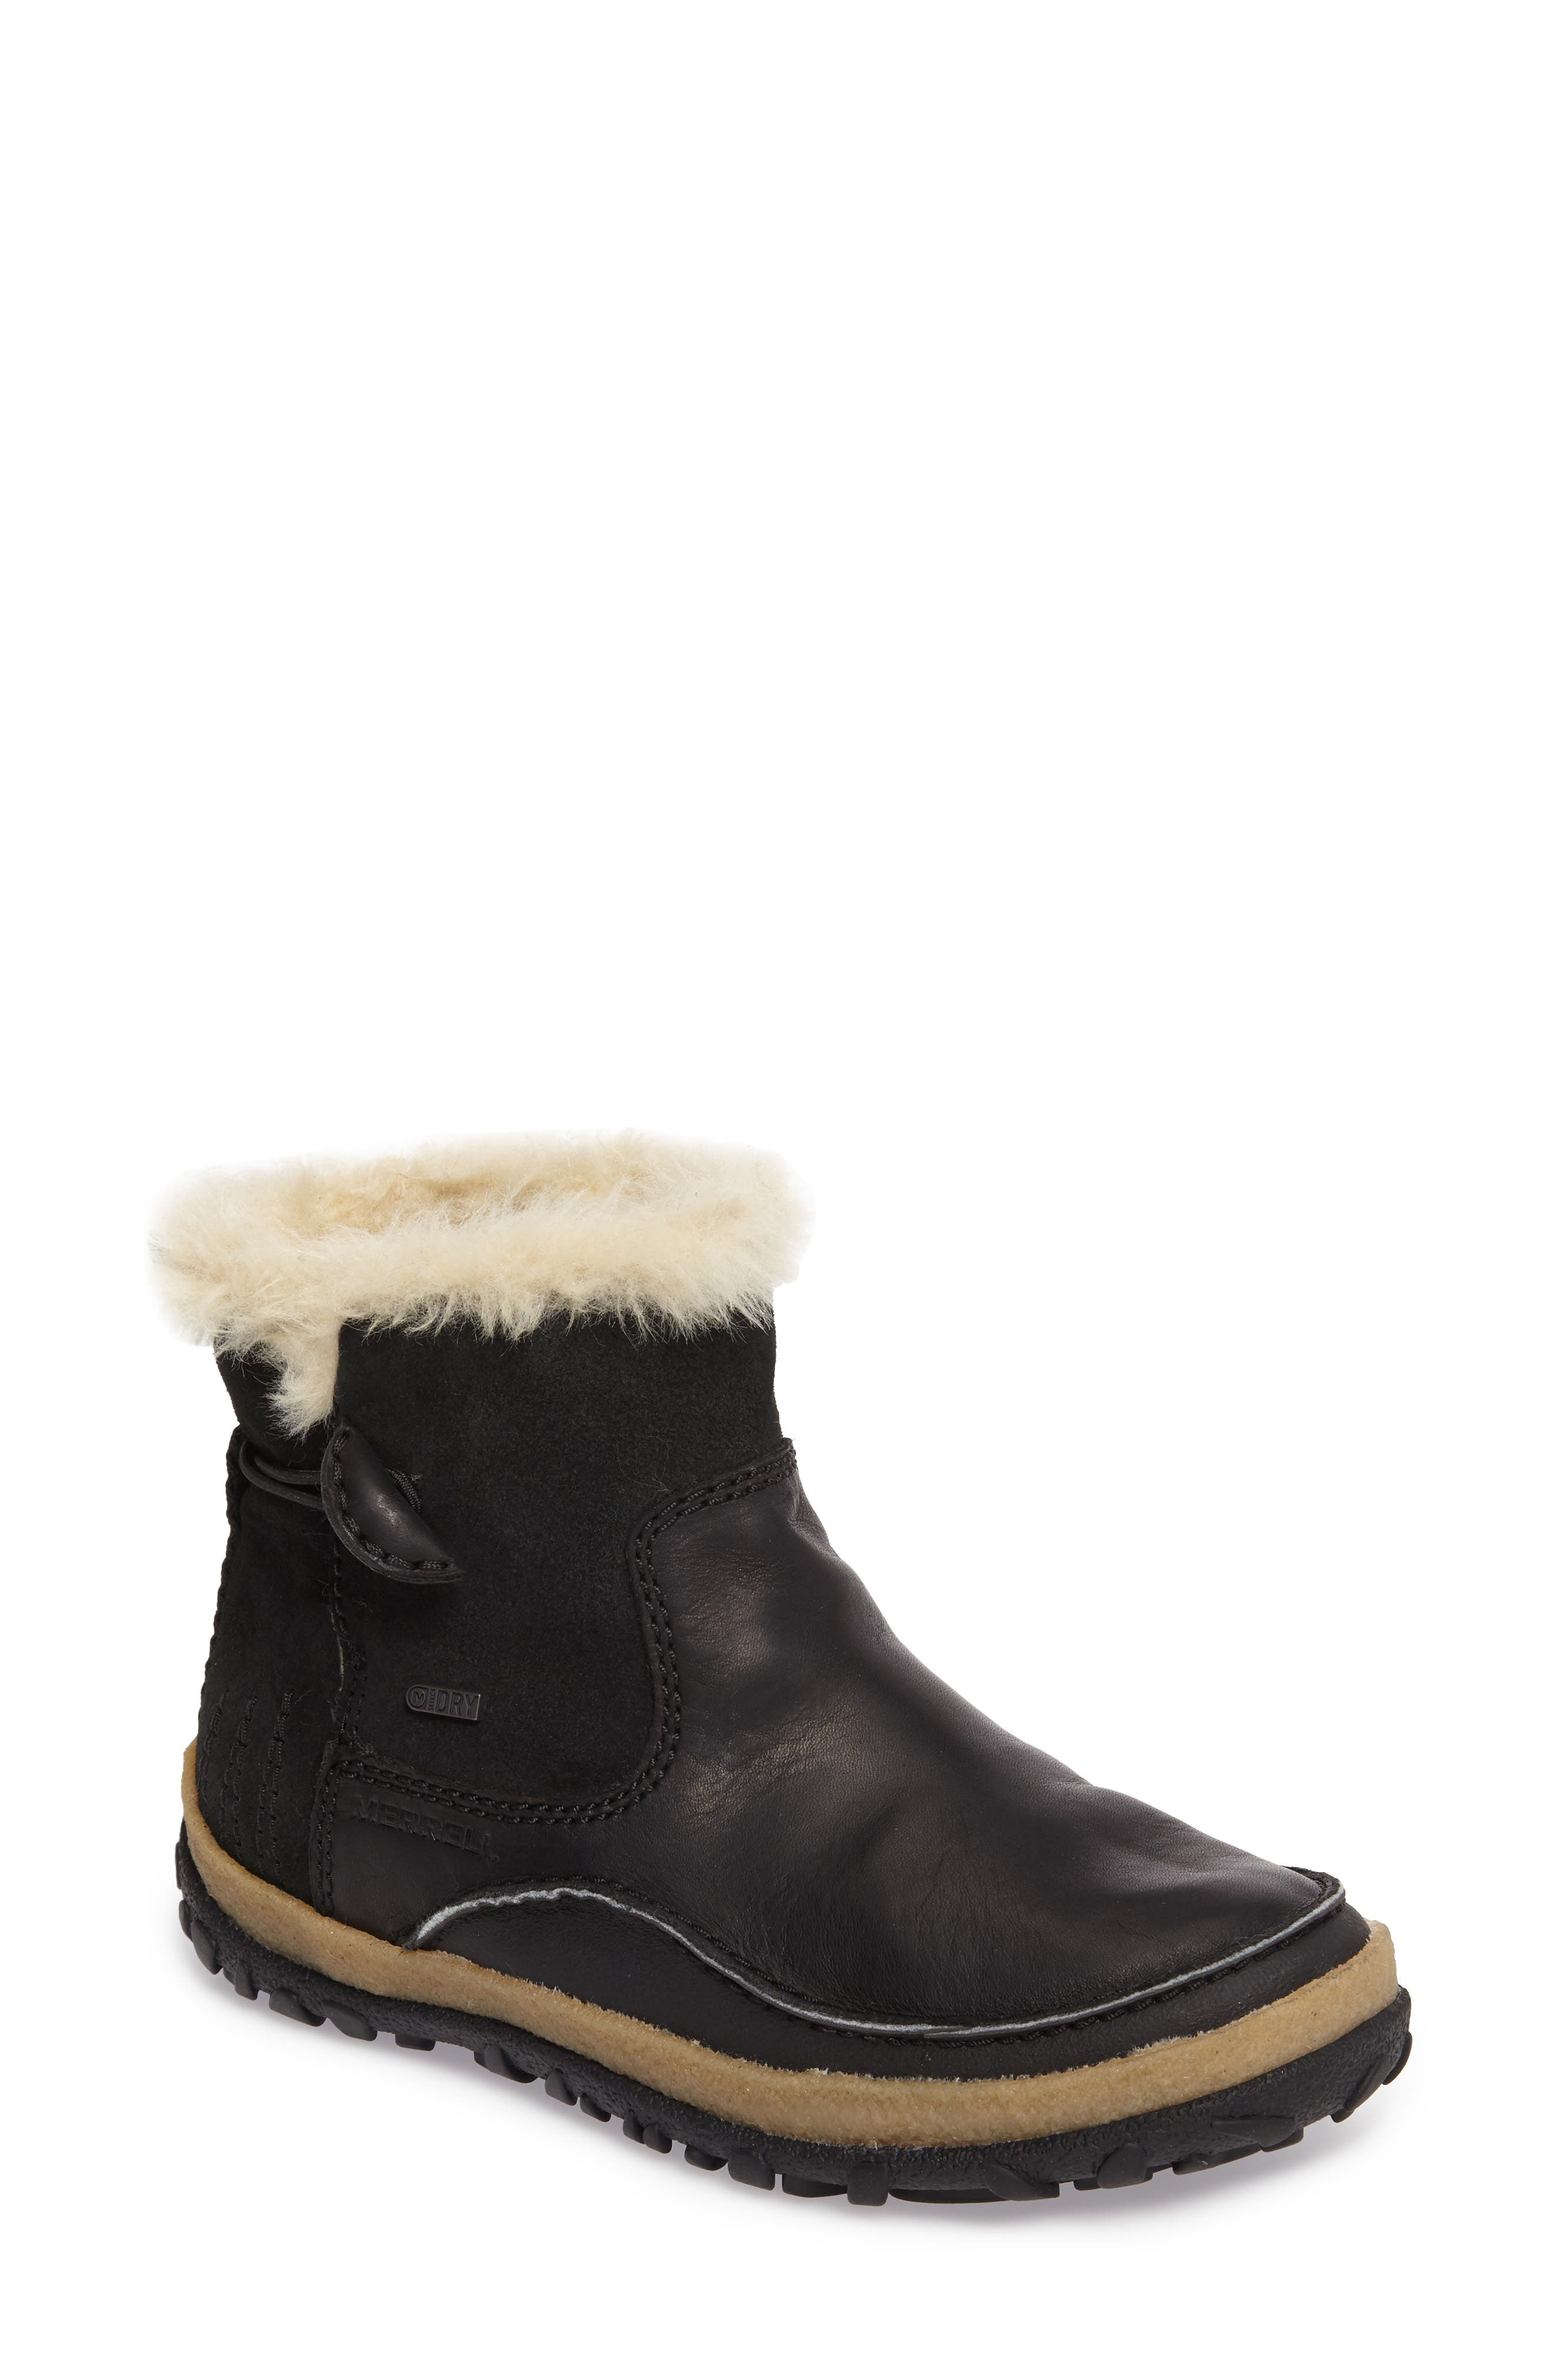 Tremblant Pull-On Polar Waterproof Bootie,                             Main thumbnail 1, color,